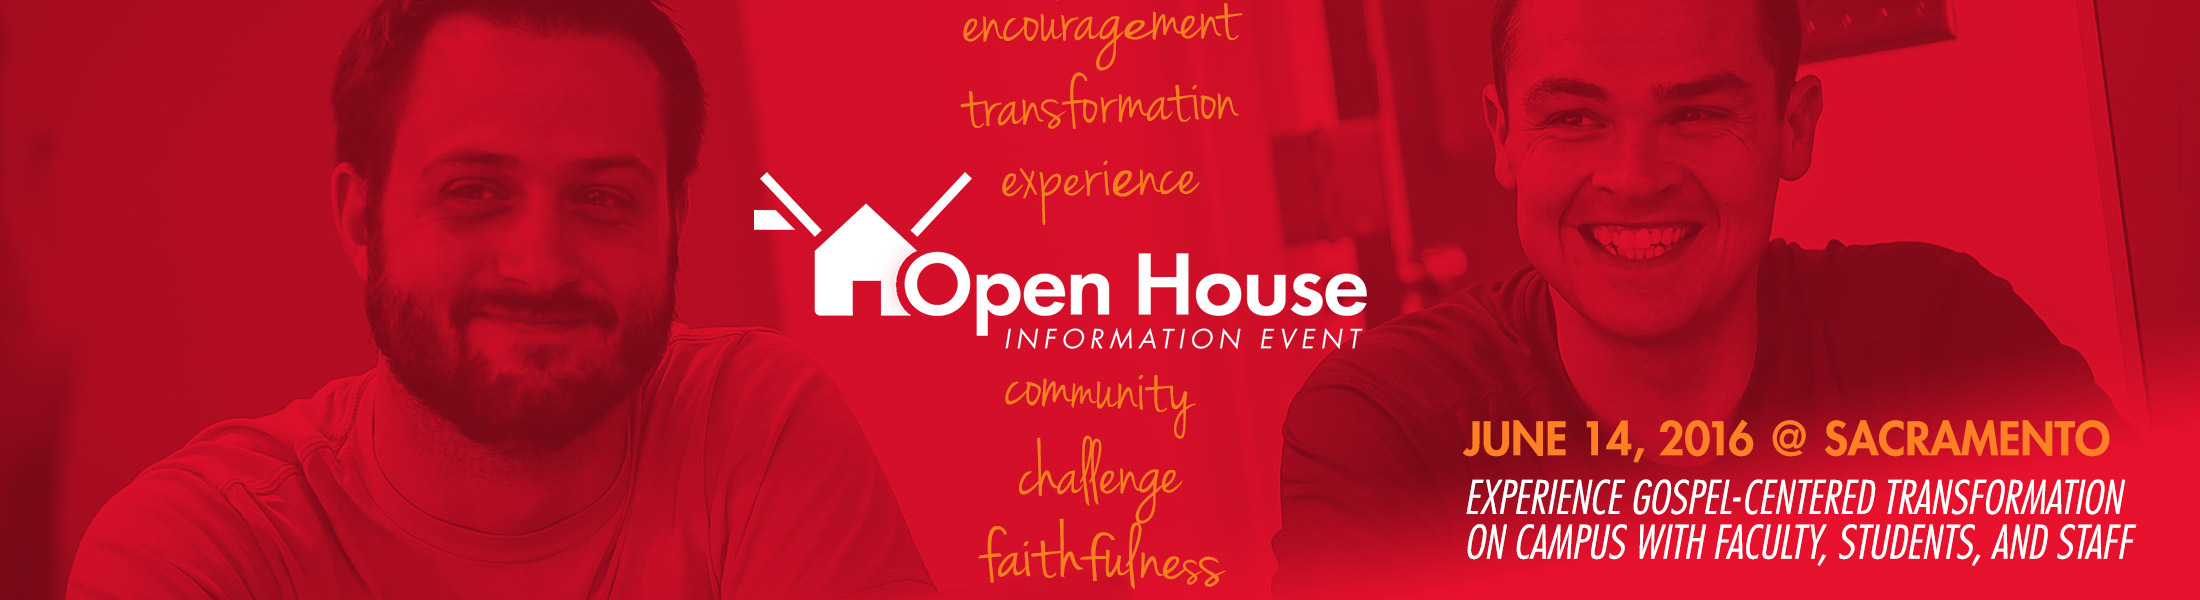 Open House Information Event at Western Seminary San Jose Campus